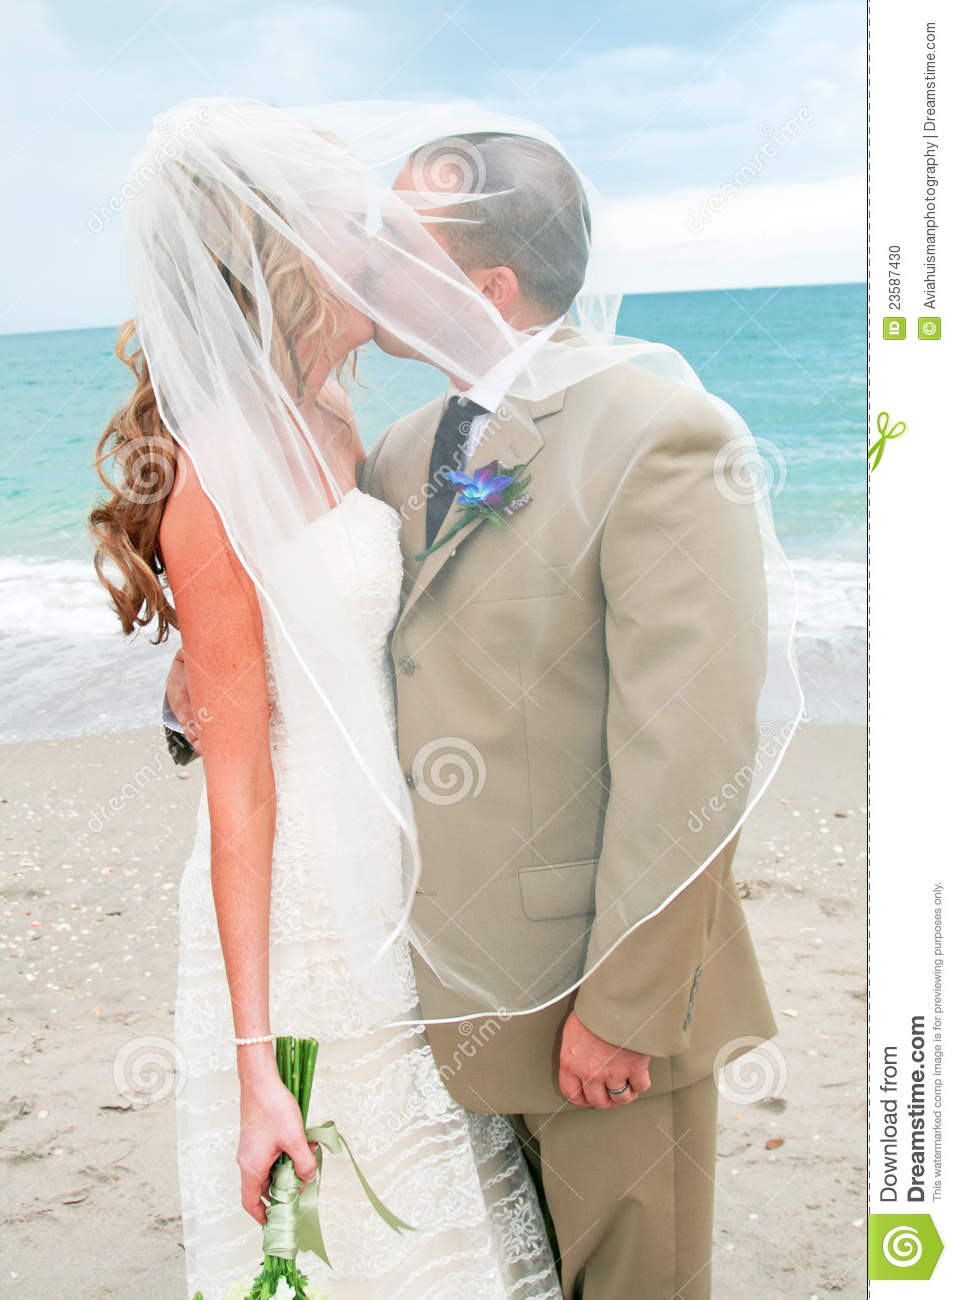 Beach Wedding: Bride And Groom Kiss Stock Photo - Image ... Traditional Wedding Vows